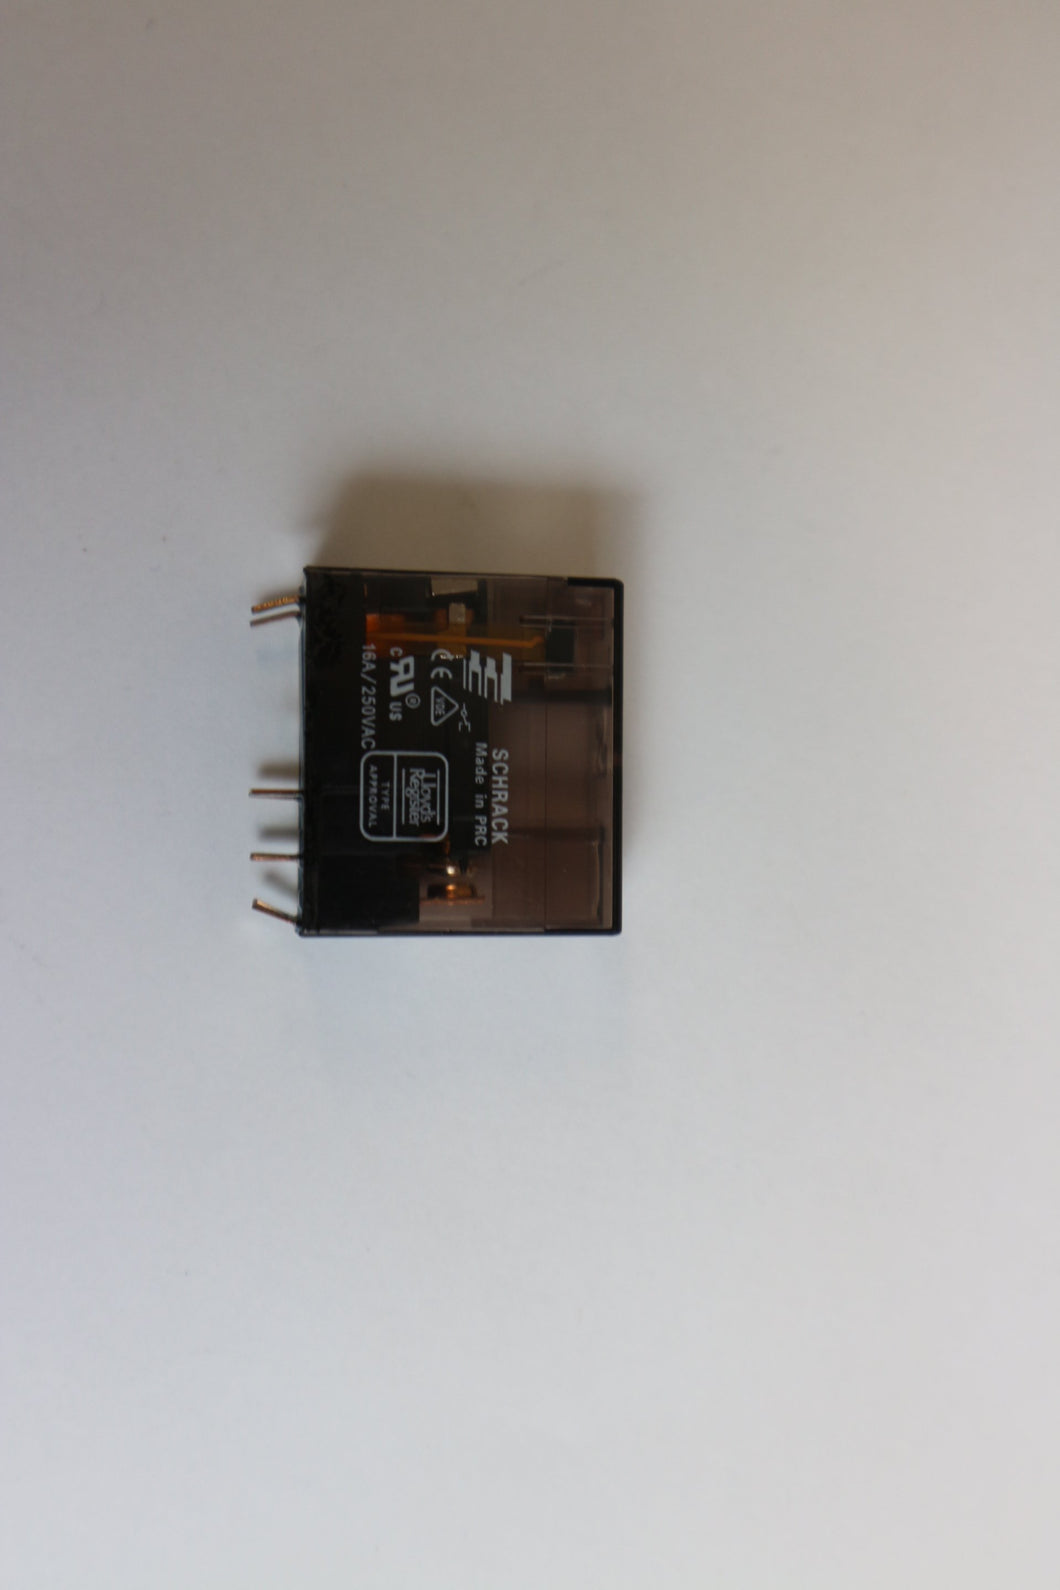 16 AMP 230V Relay 8870150000 RCI-314T30 - TE Connectivity